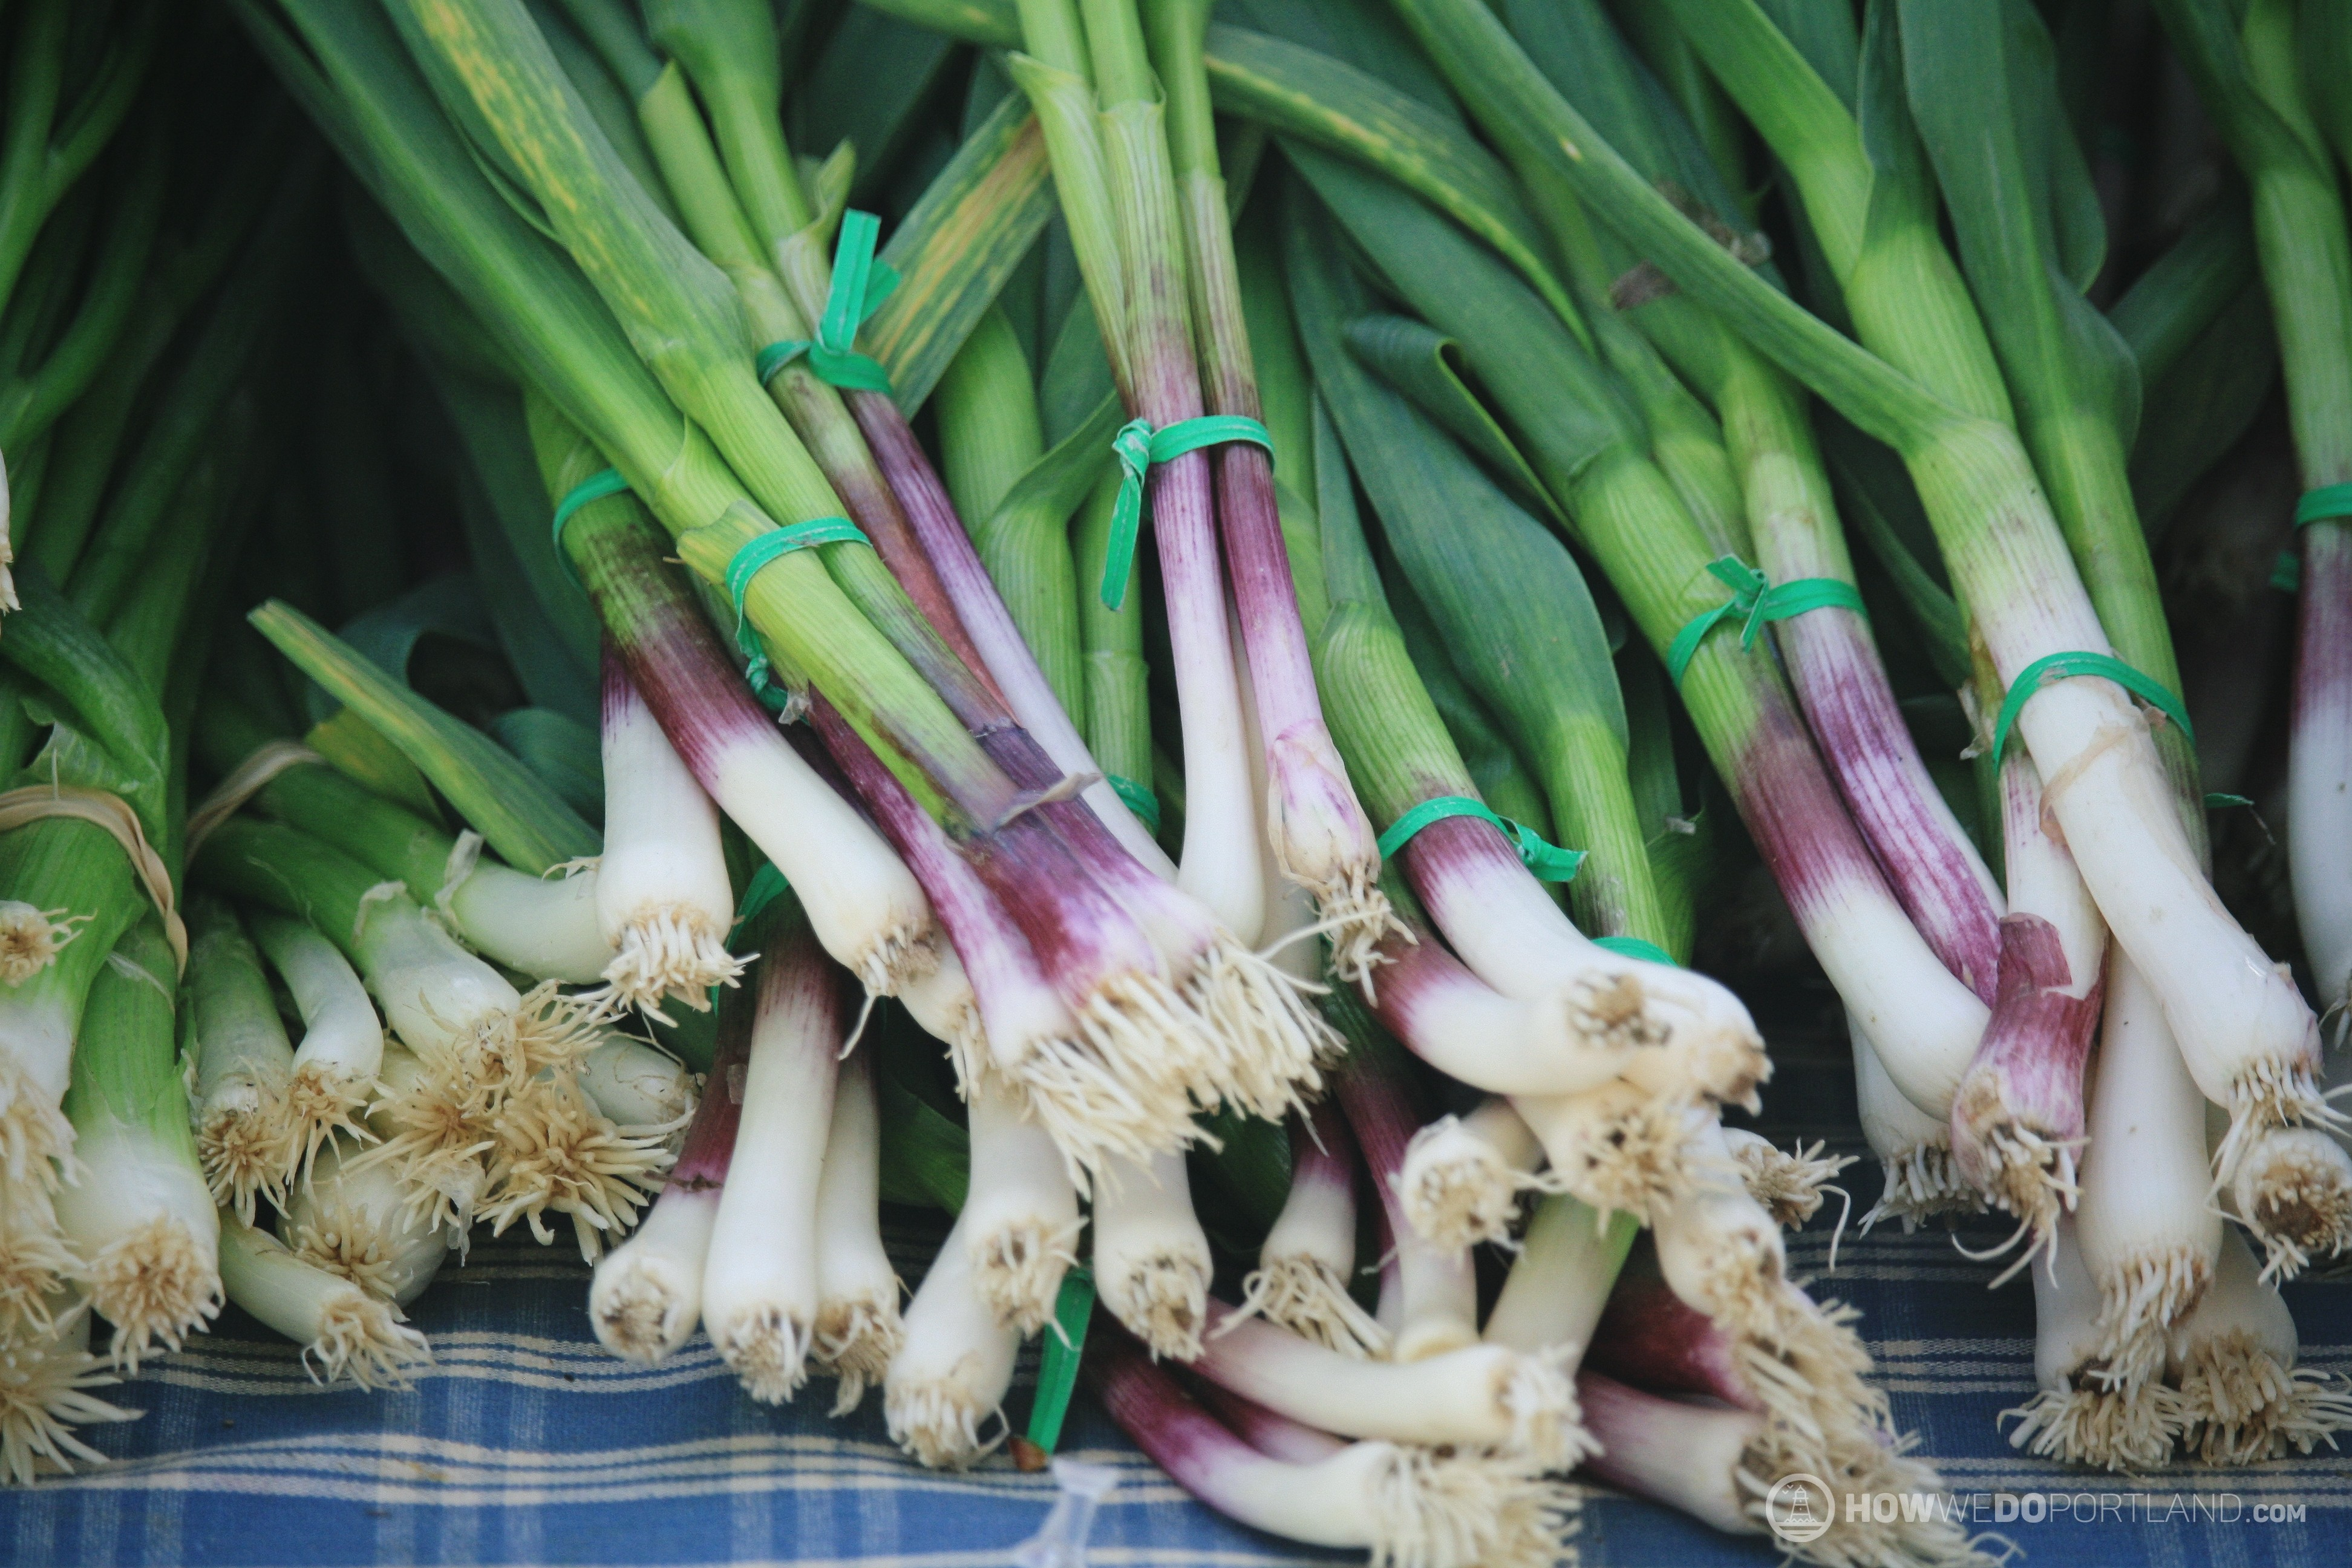 Brightly colored scallions